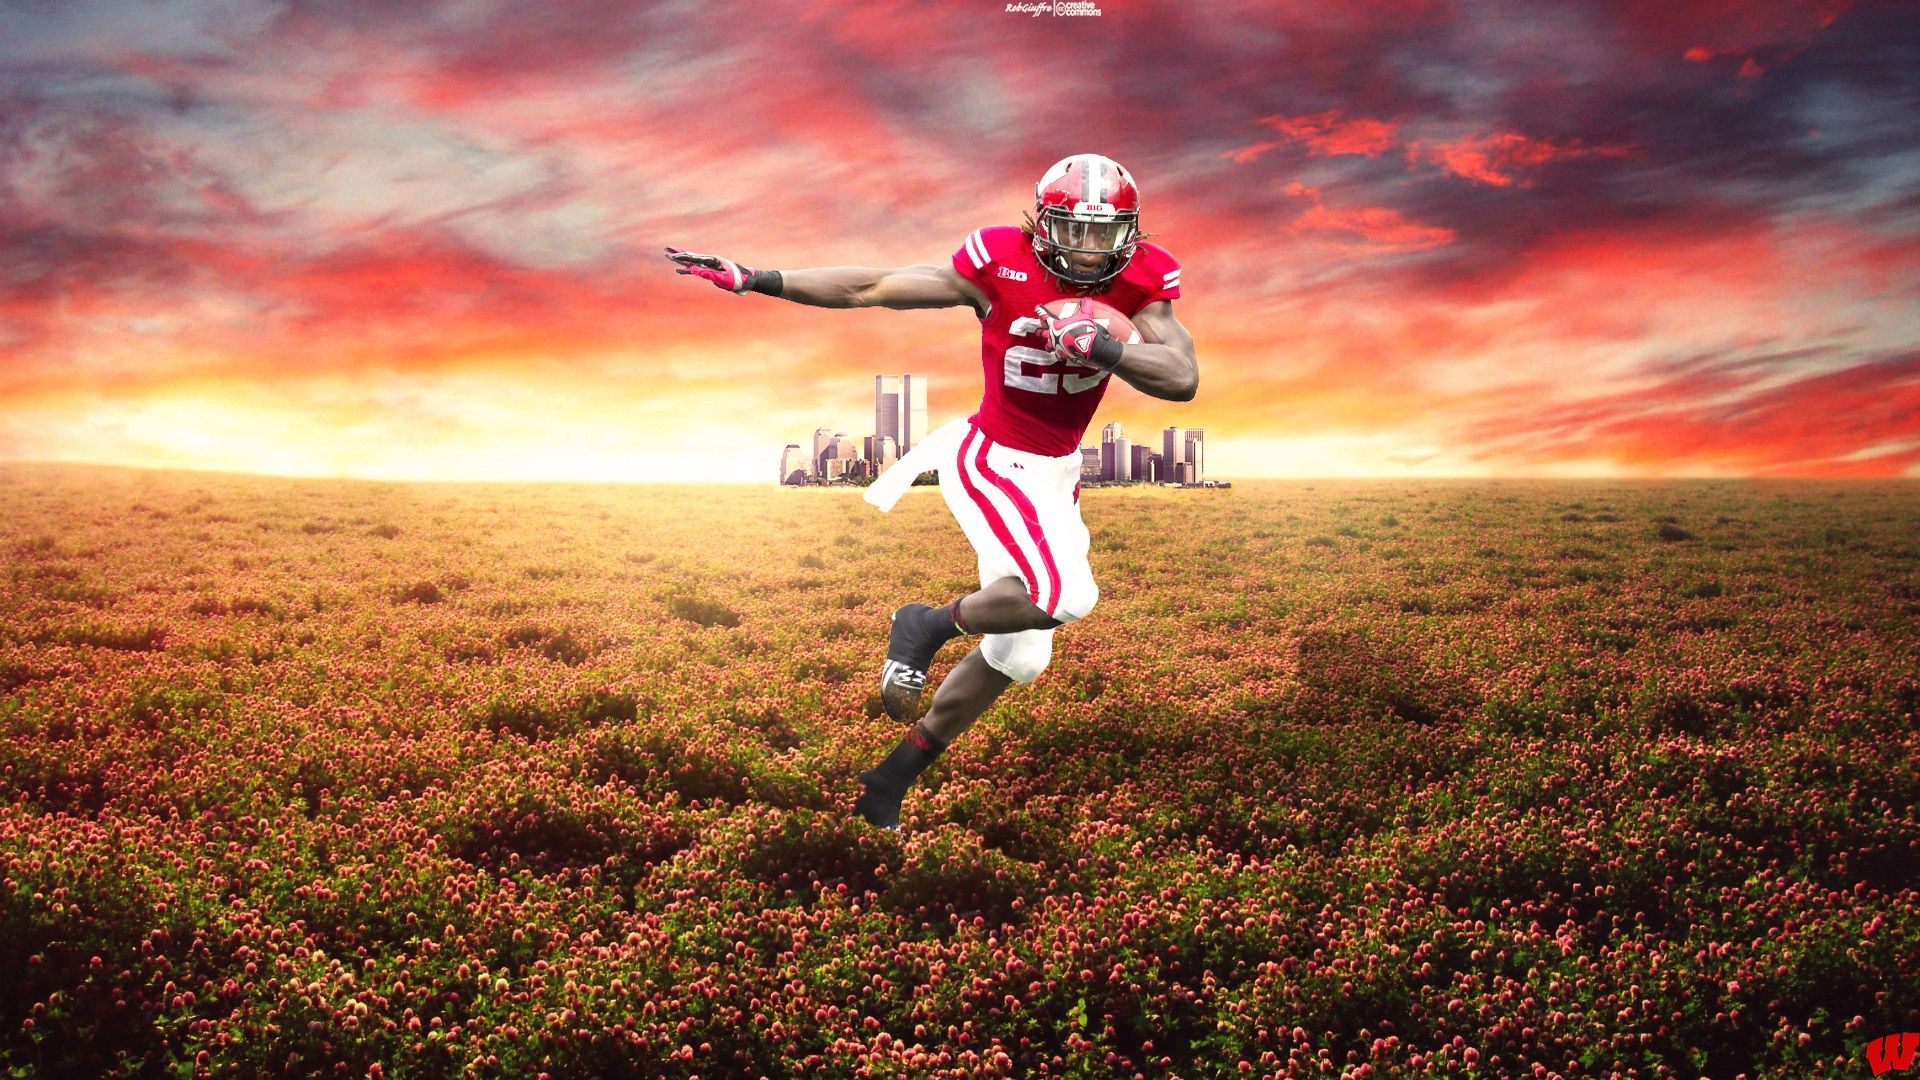 Melvin Gordon Nfl Wallpapers Hd 9to5animations Com Hd Wallpapers Gifs Backgrounds Images Sports Wallpapers Nfl Football Wallpaper Football Wallpaper